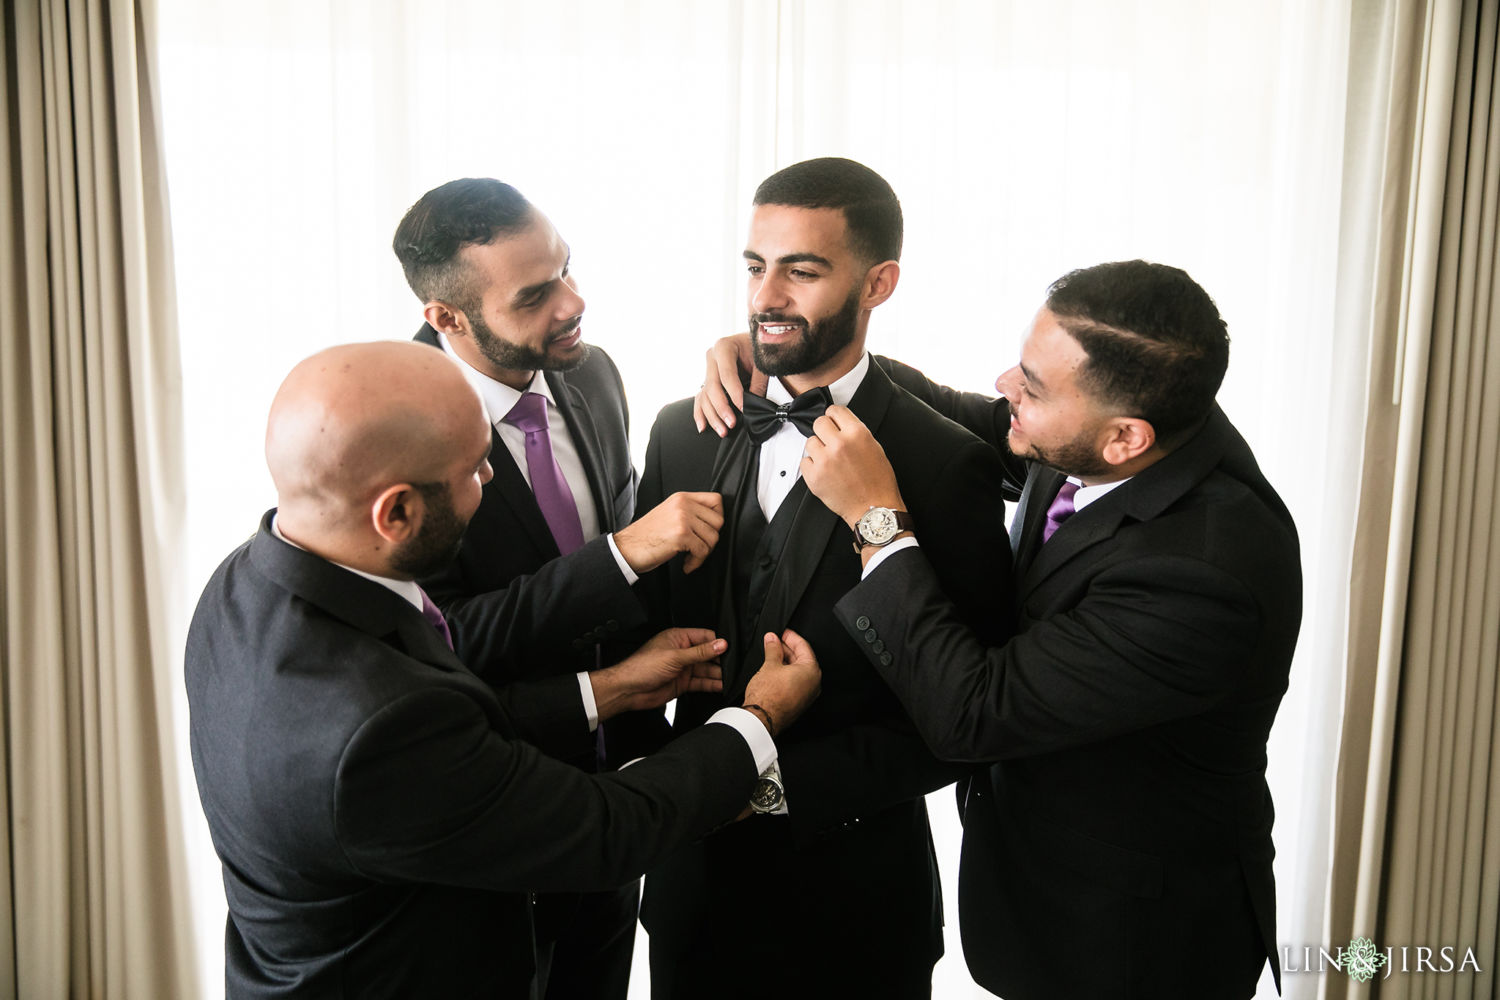 Groom prep 02 St Mark Coptic Orthodox Church Wedding